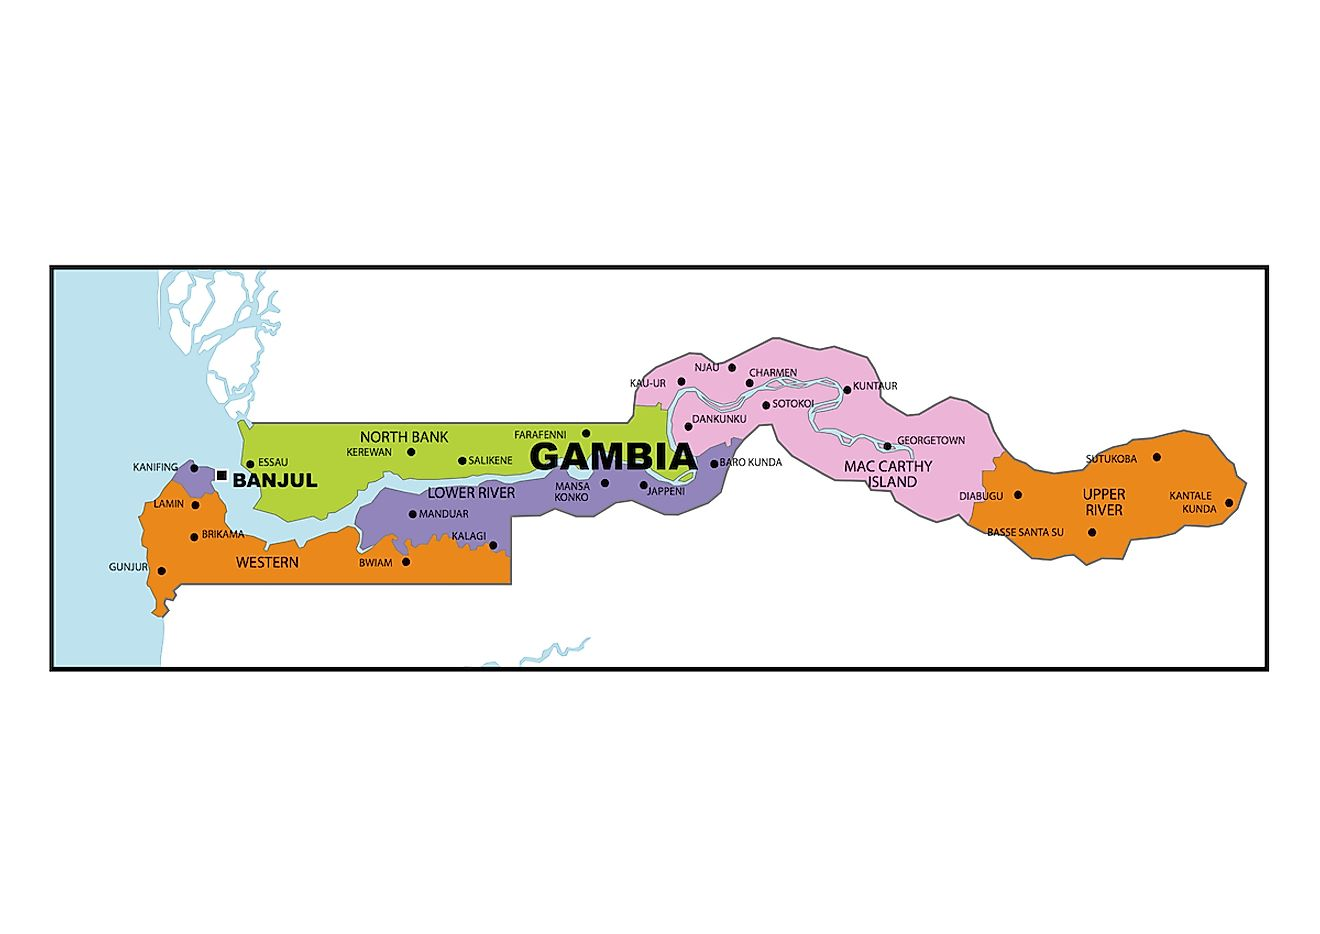 Political Map of The Gambia showing the 5 regions and the capital city of Banjul.